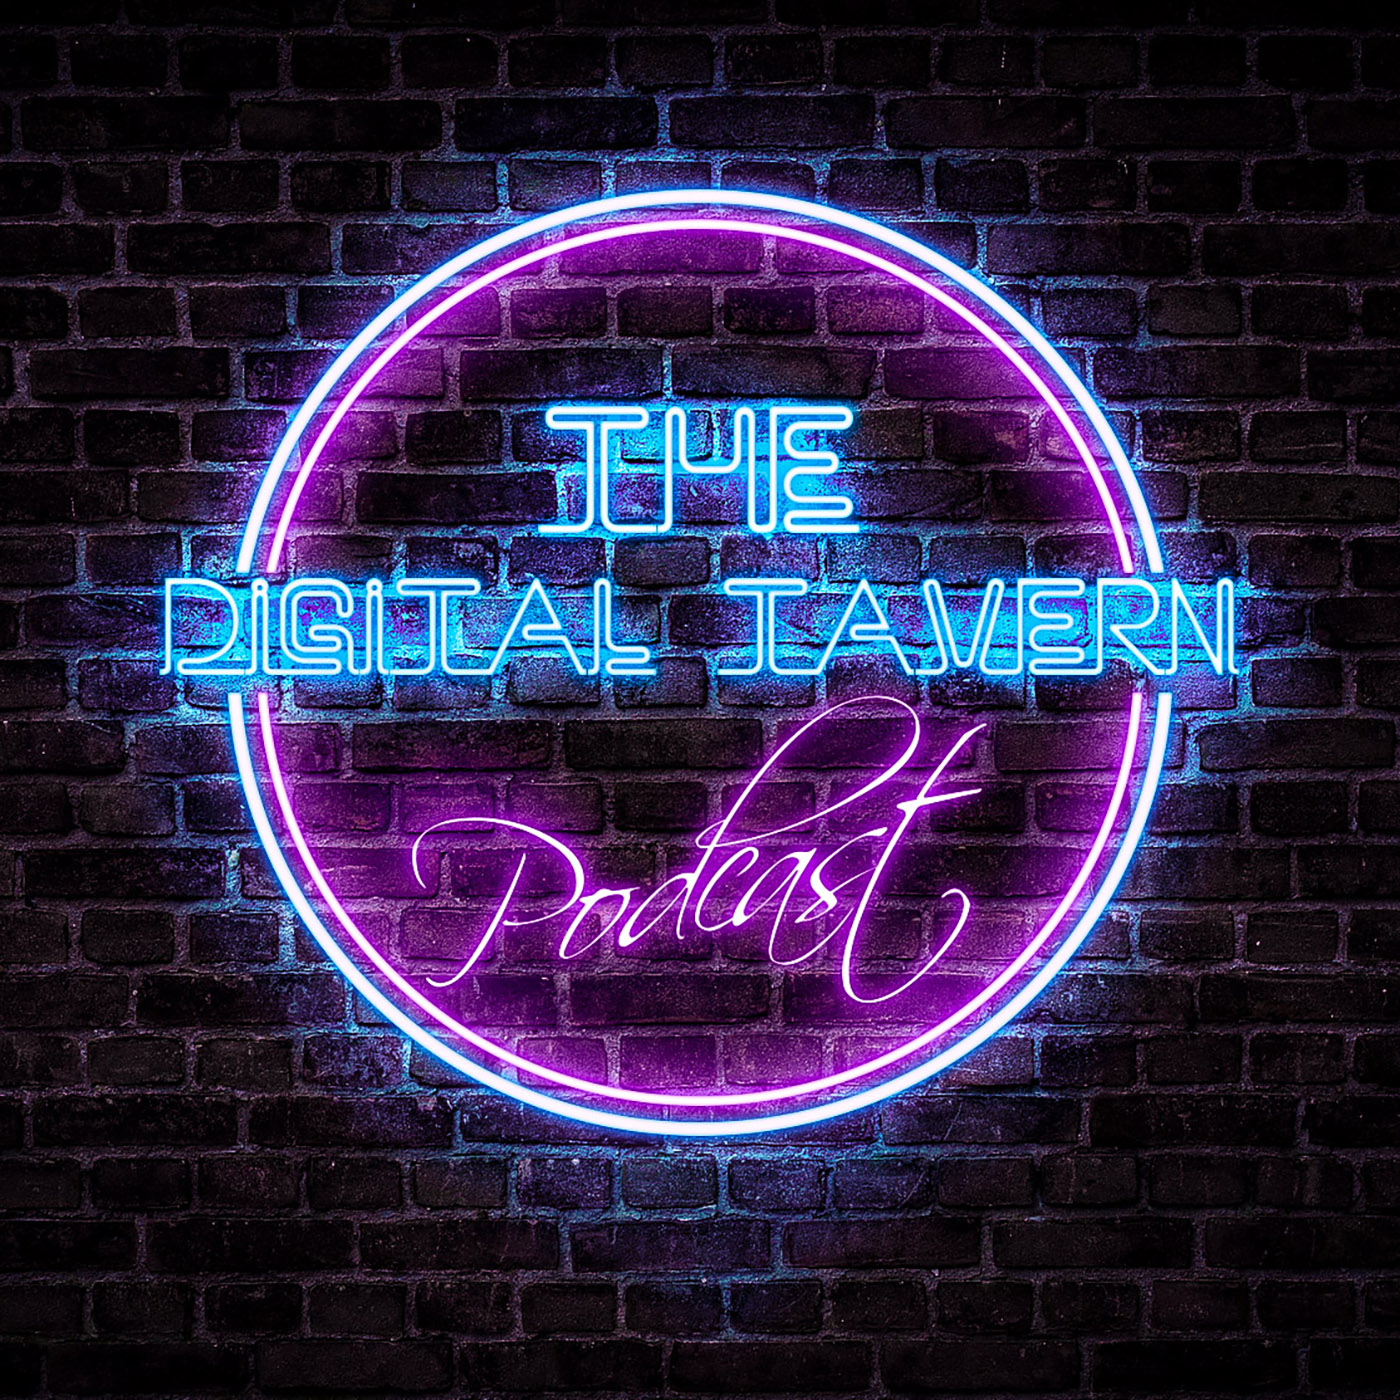 The Digital Tavern